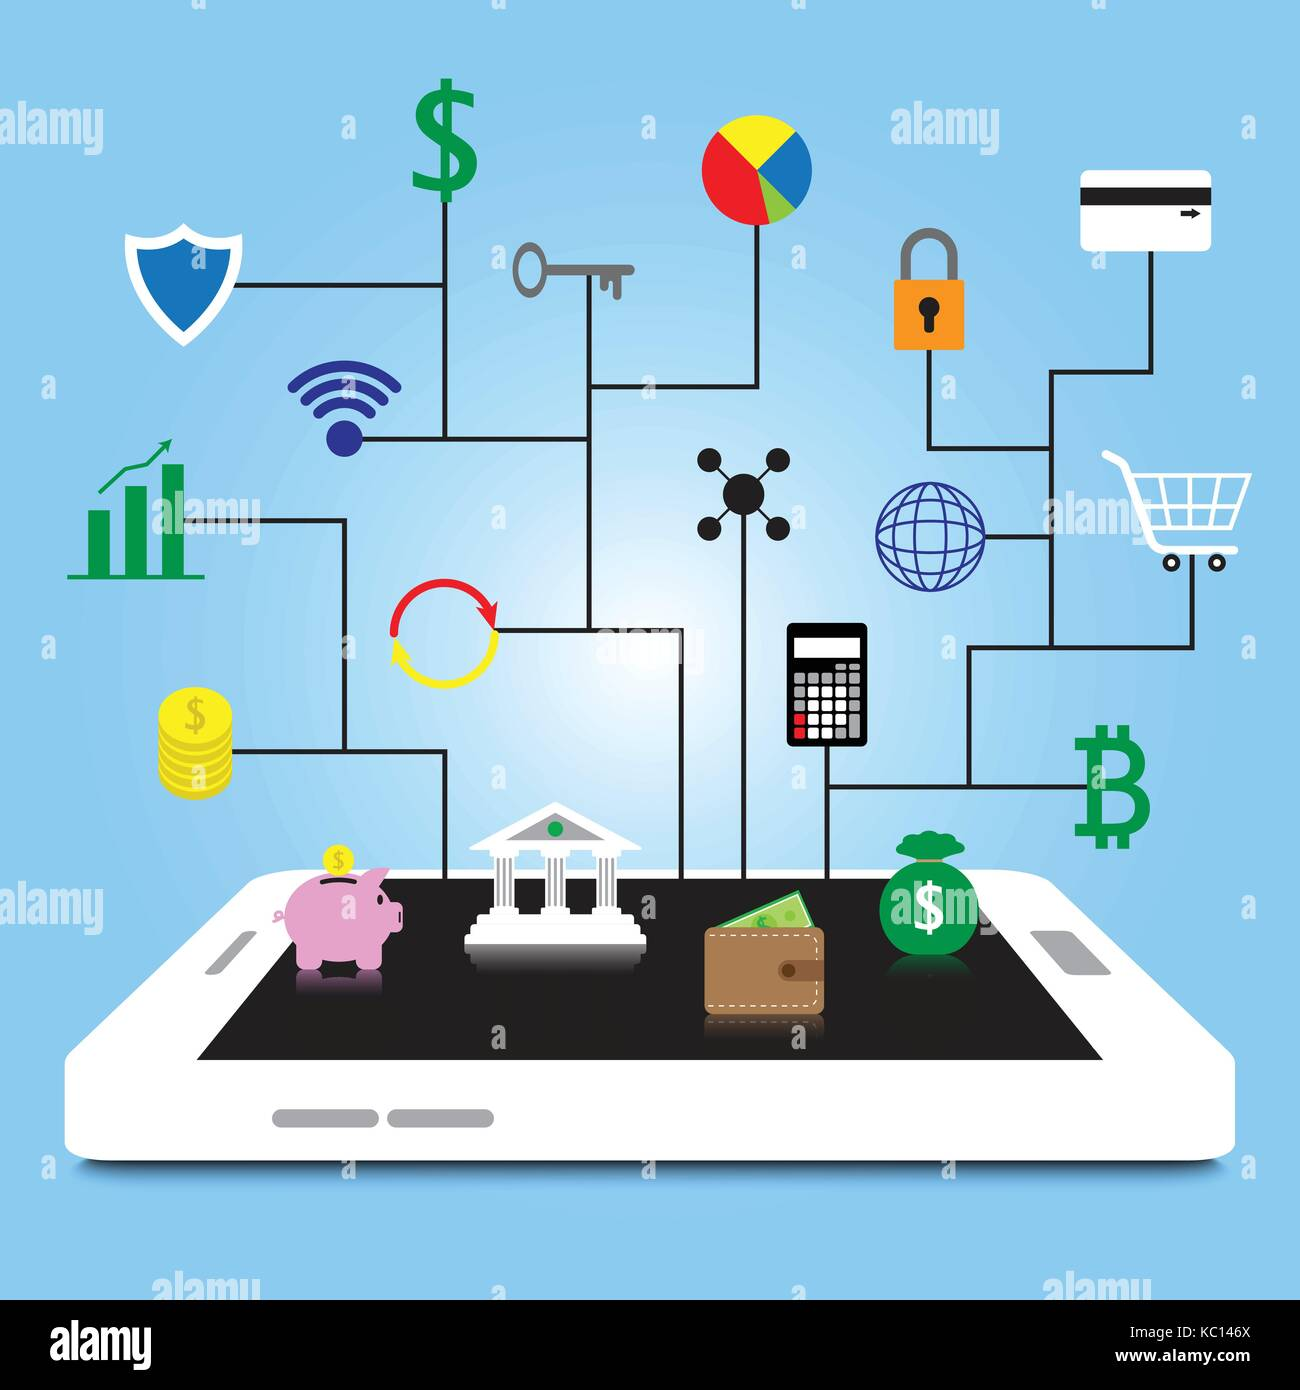 19 Fintech Colorful Icons Are Connected To White Smartphone By Black Lines On Blue Background Involving In Financial - Stock Image